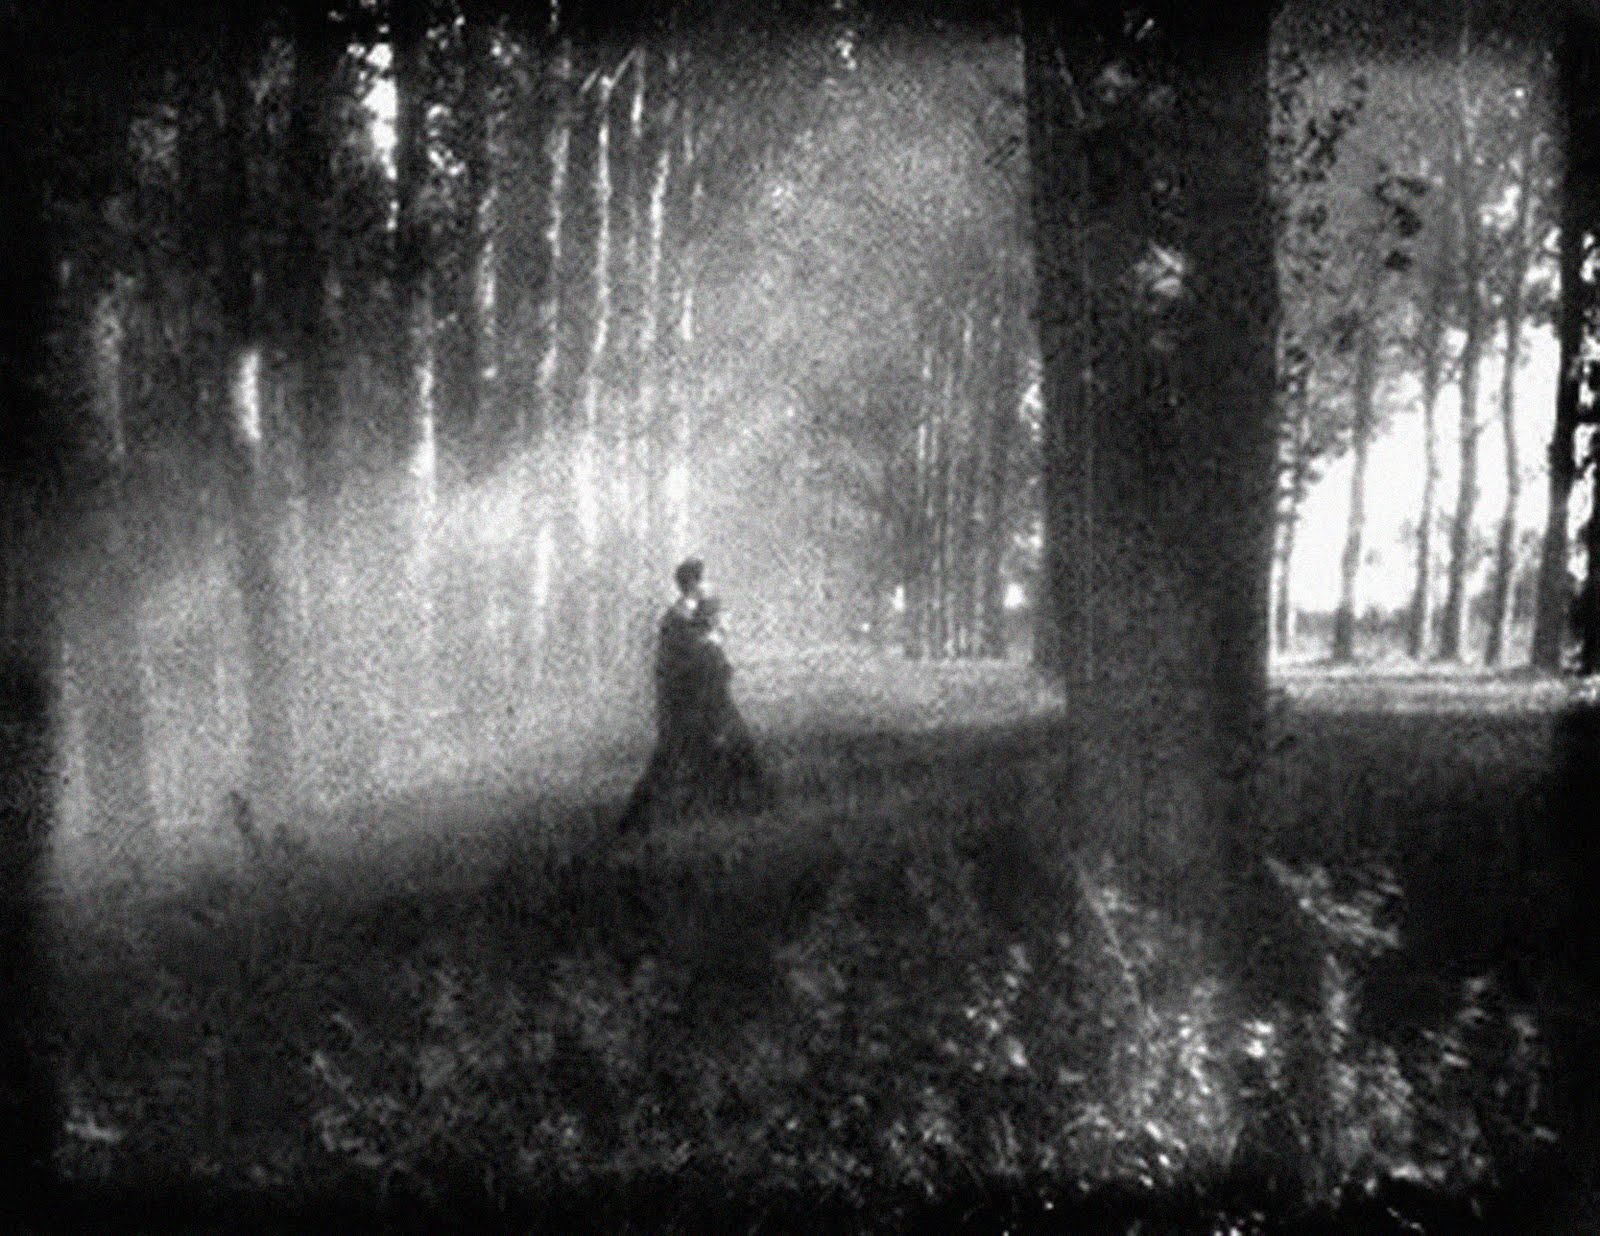 for pilar vampyr from 1932 by carl theodor dreyer starring